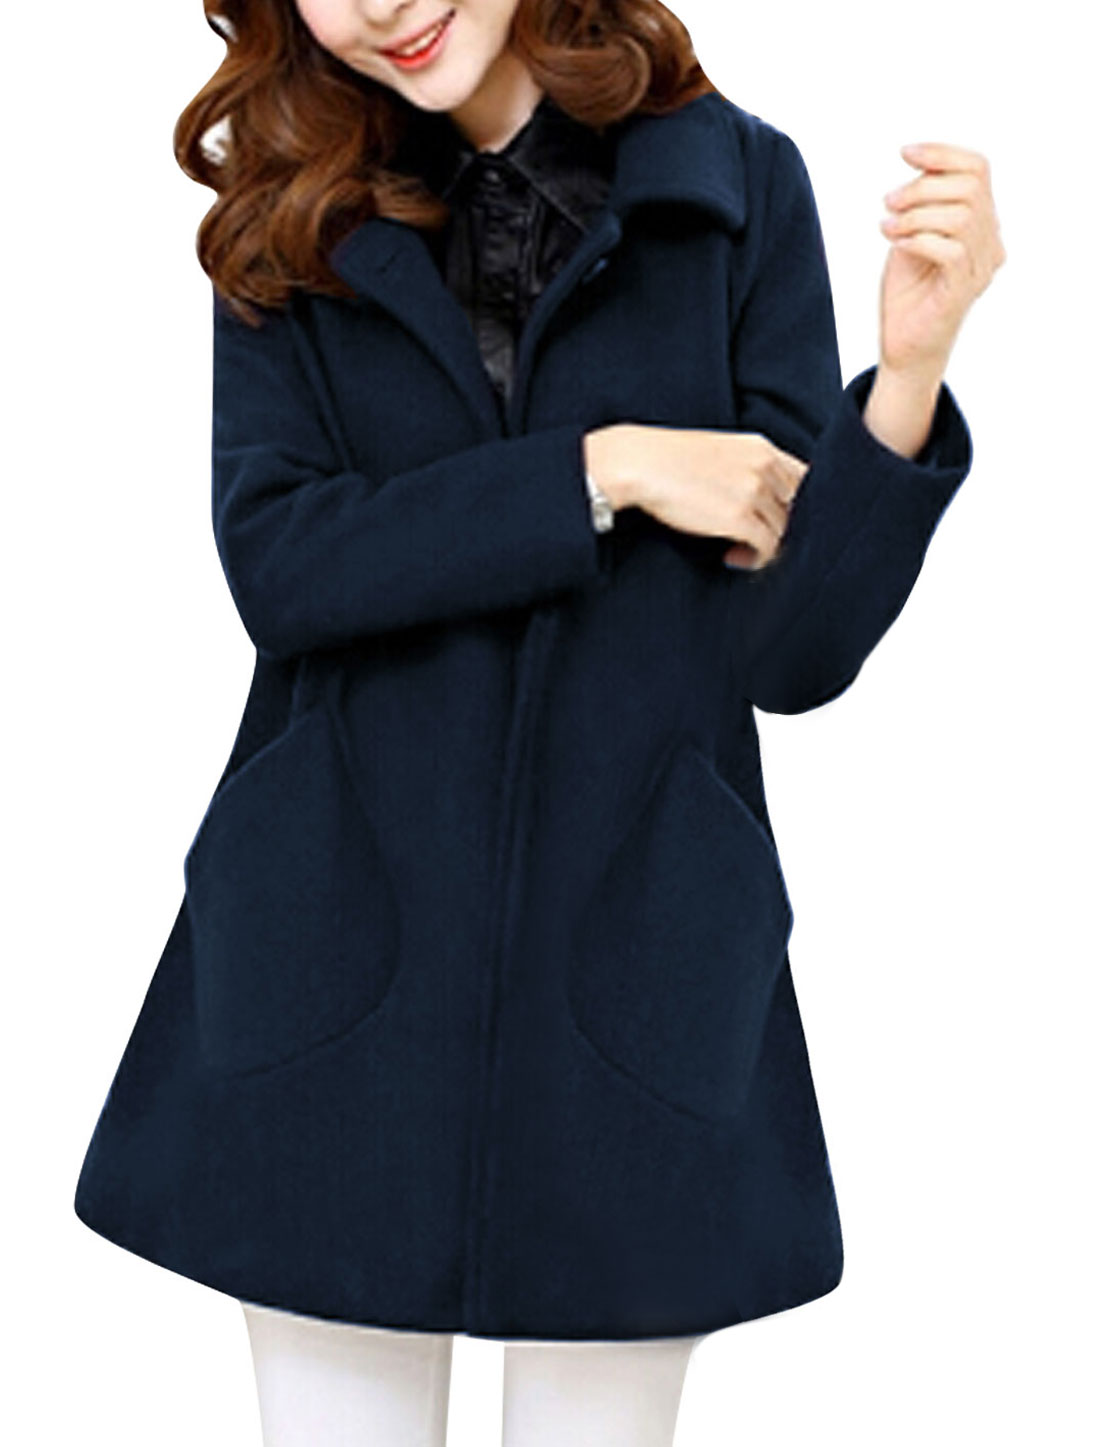 New Style Notched Lapel Double Breasted Fashion Worsted Coat for Lady Navy Blue M